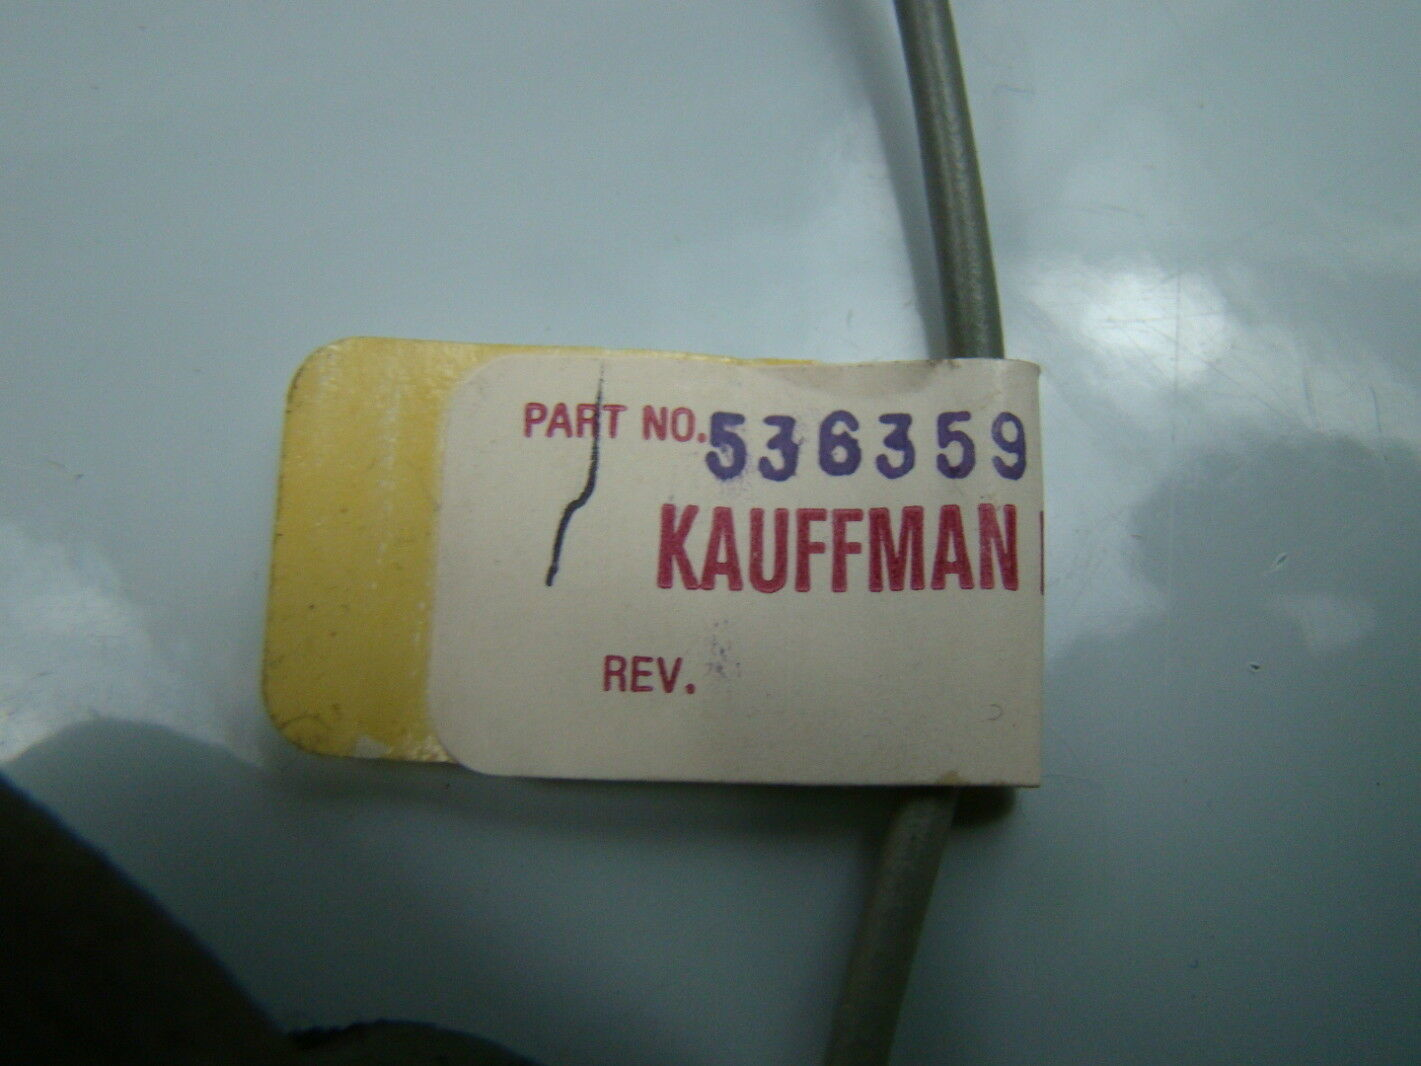 jf07862 kauffman engineering wiring harness 536359 5 kauffman engineering wiring harness 536359 ebay kauffman wire harness at crackthecode.co